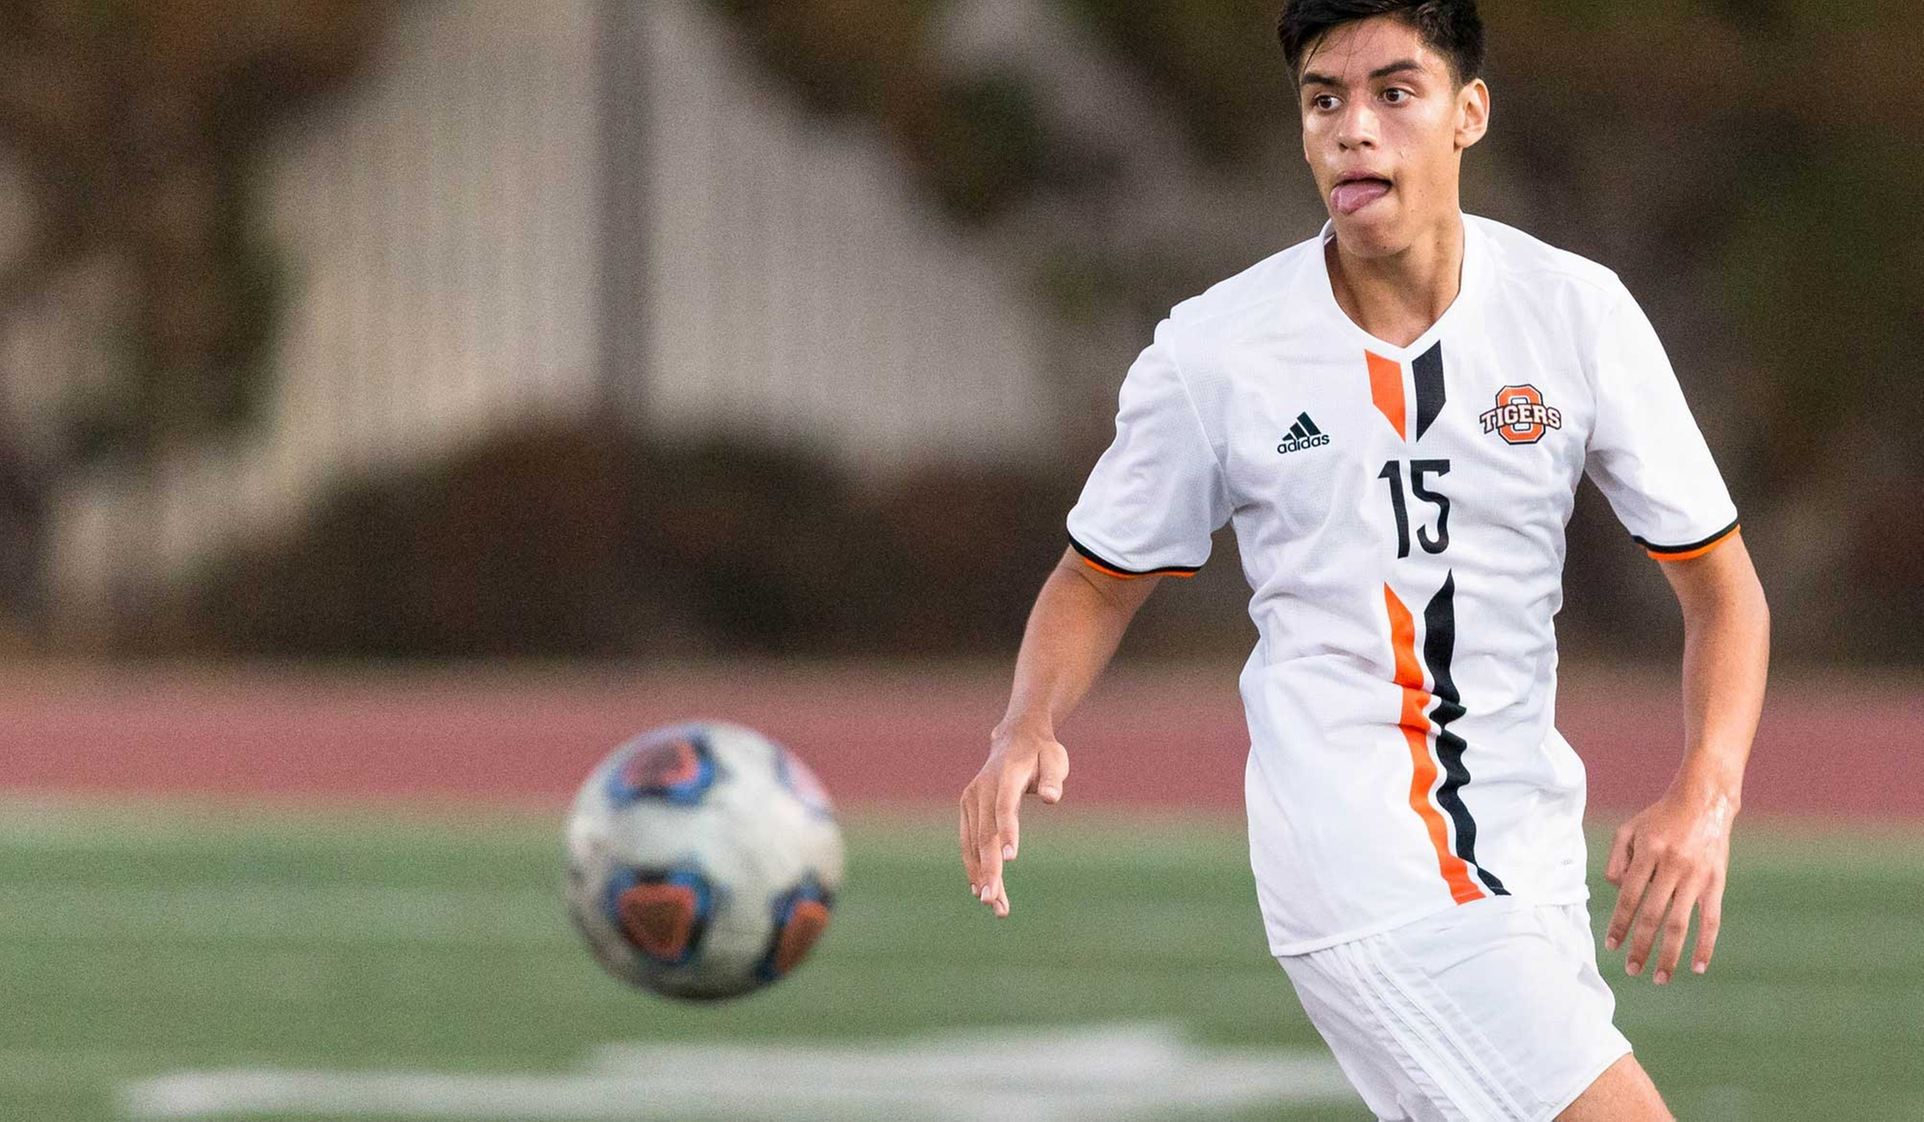 Oxy Nearly Knocks Off NCAA D2 UCSD